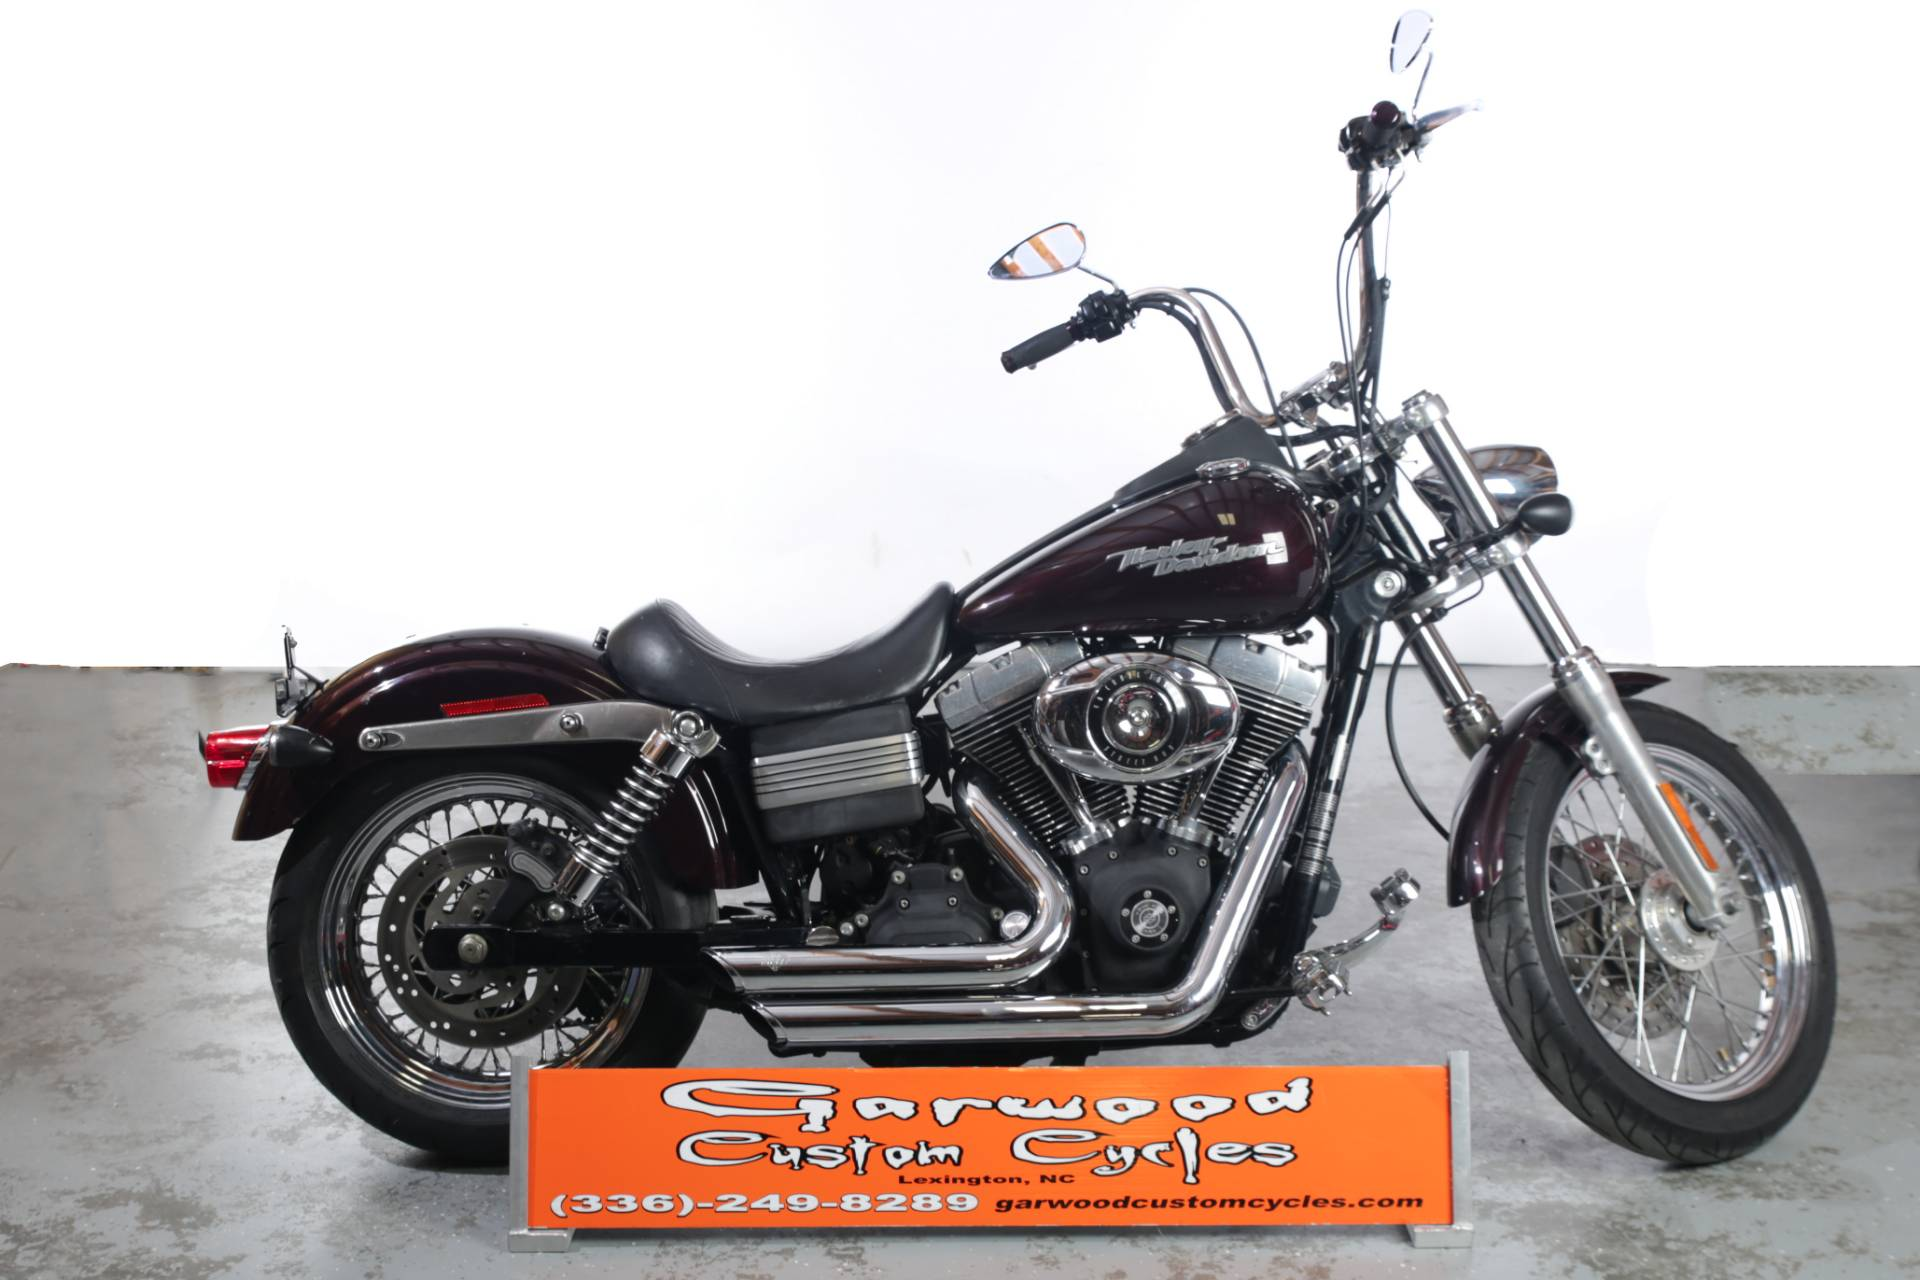 2007 Harley Davidson FXDB in Lexington, North Carolina - Photo 1